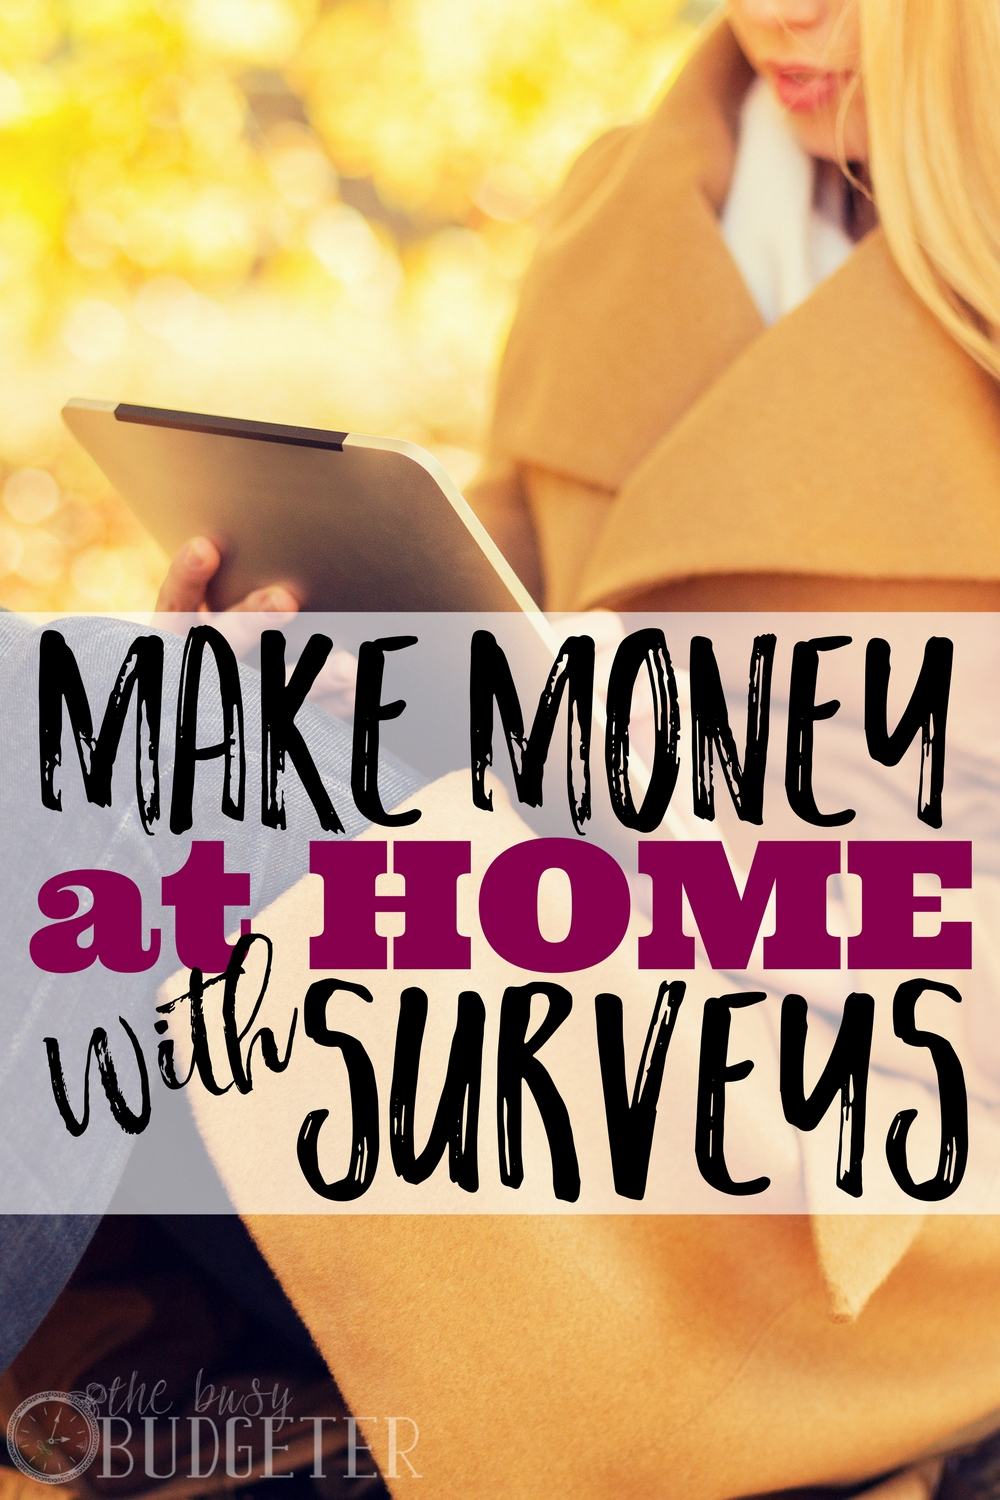 I can't even begin to tell you how much I love easy ways to make money from home! I never knew that I could actually make money with surveys, but this article tells you exactly how you can make it work for you!  Who doesn't love having some extra money-- am I right??